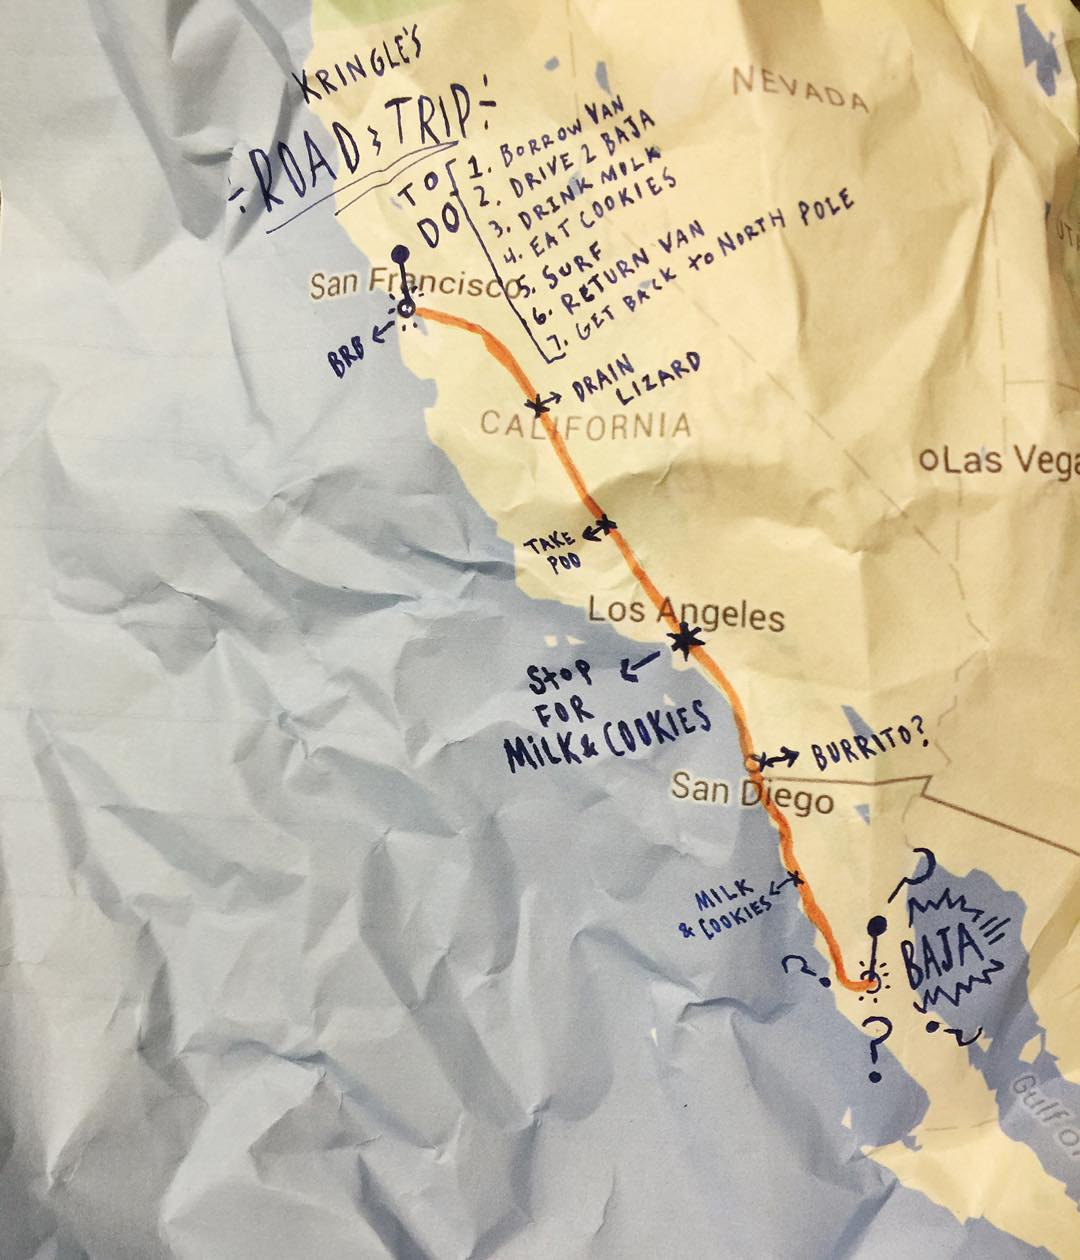 Our new friend Kris Kringle borrowed our van for his holiday road trip, but dropped his map. Looks like he's headed to where Stoked Goods began! Baja.